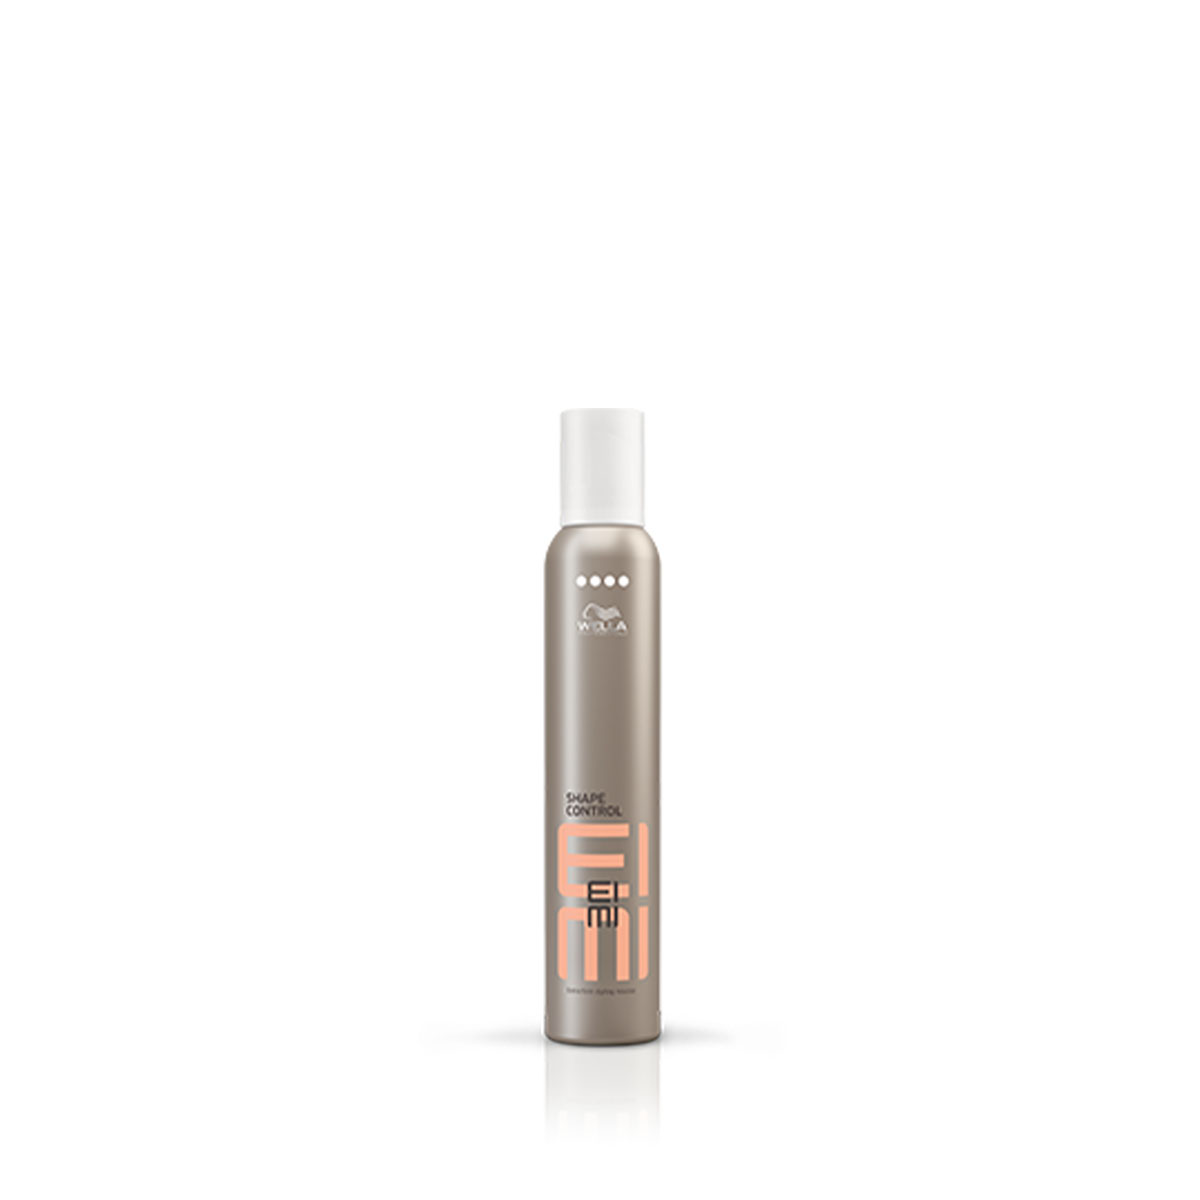 Eimi Shape Control-styling Mousse 300 Ml